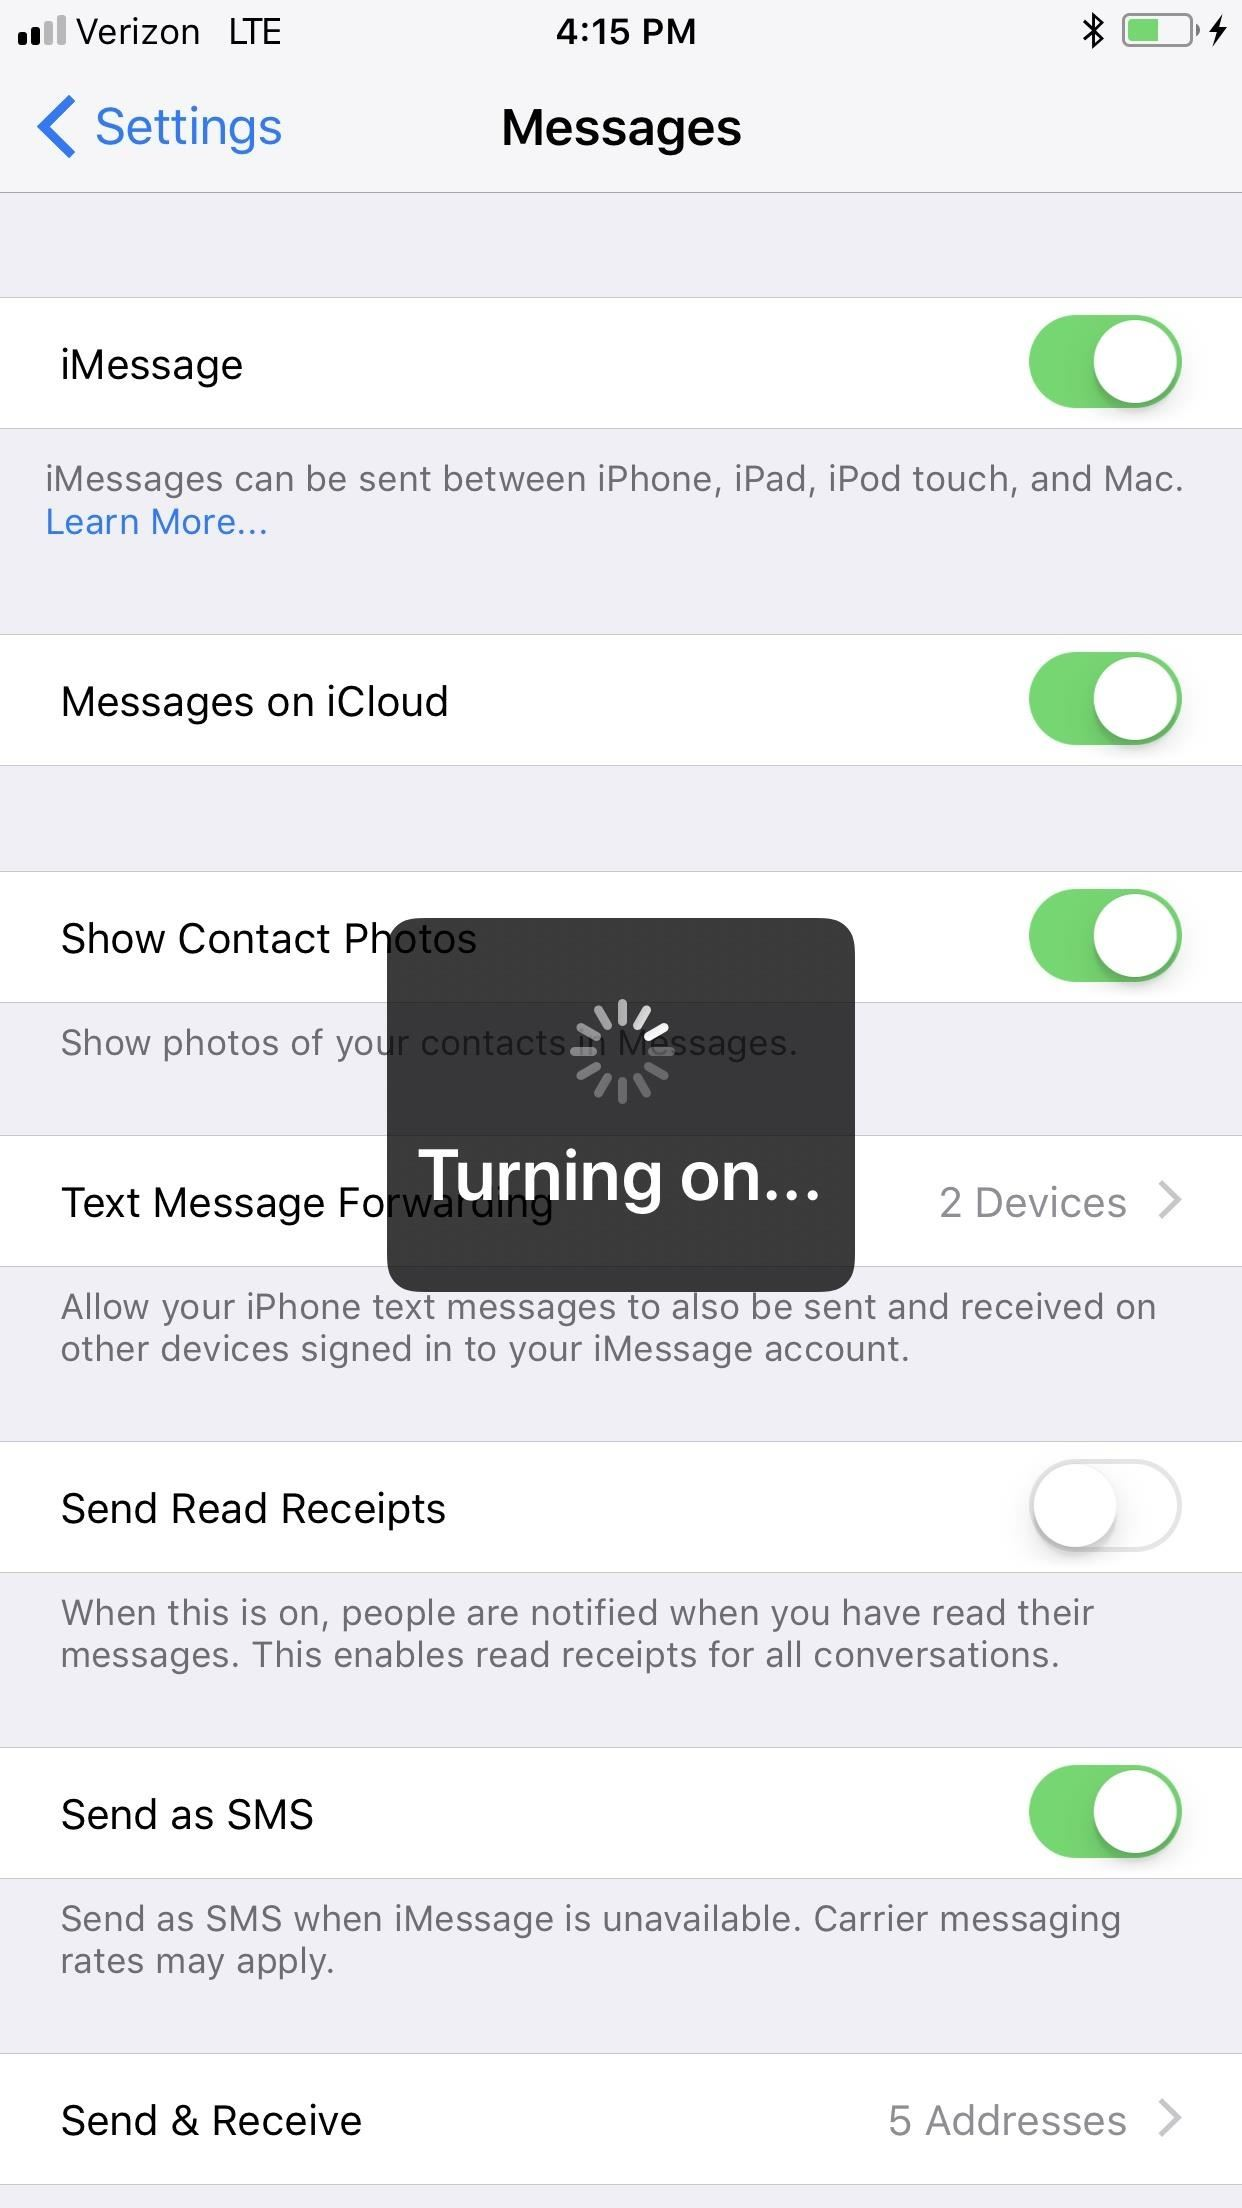 91 Cool New iOS 11 Features You Didn't Know About